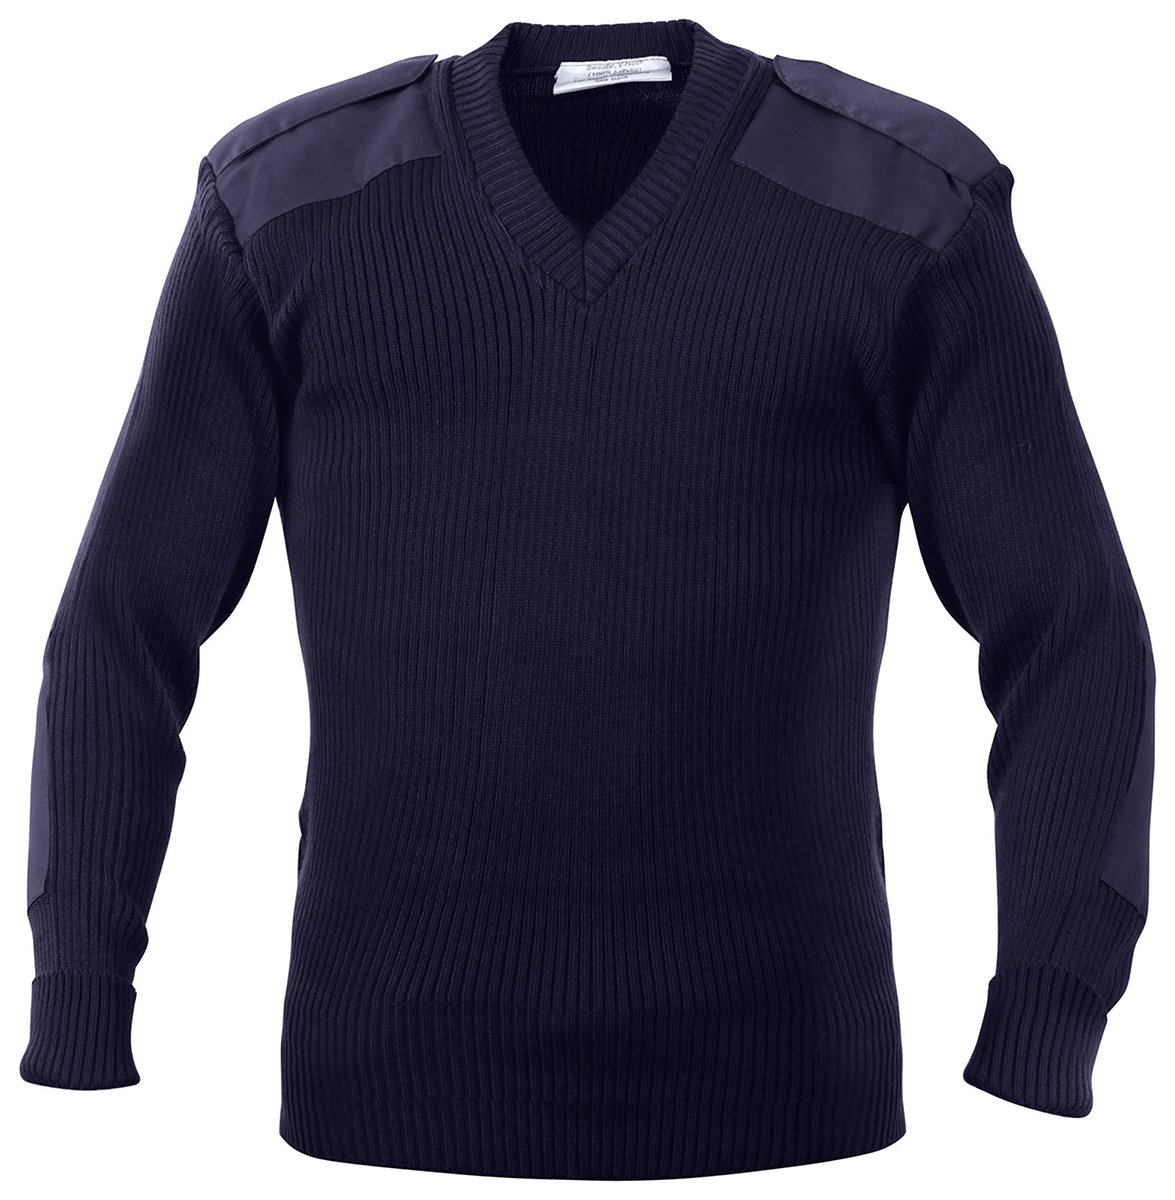 Rothco Acrylic V-Neck Sweater 6346NVY